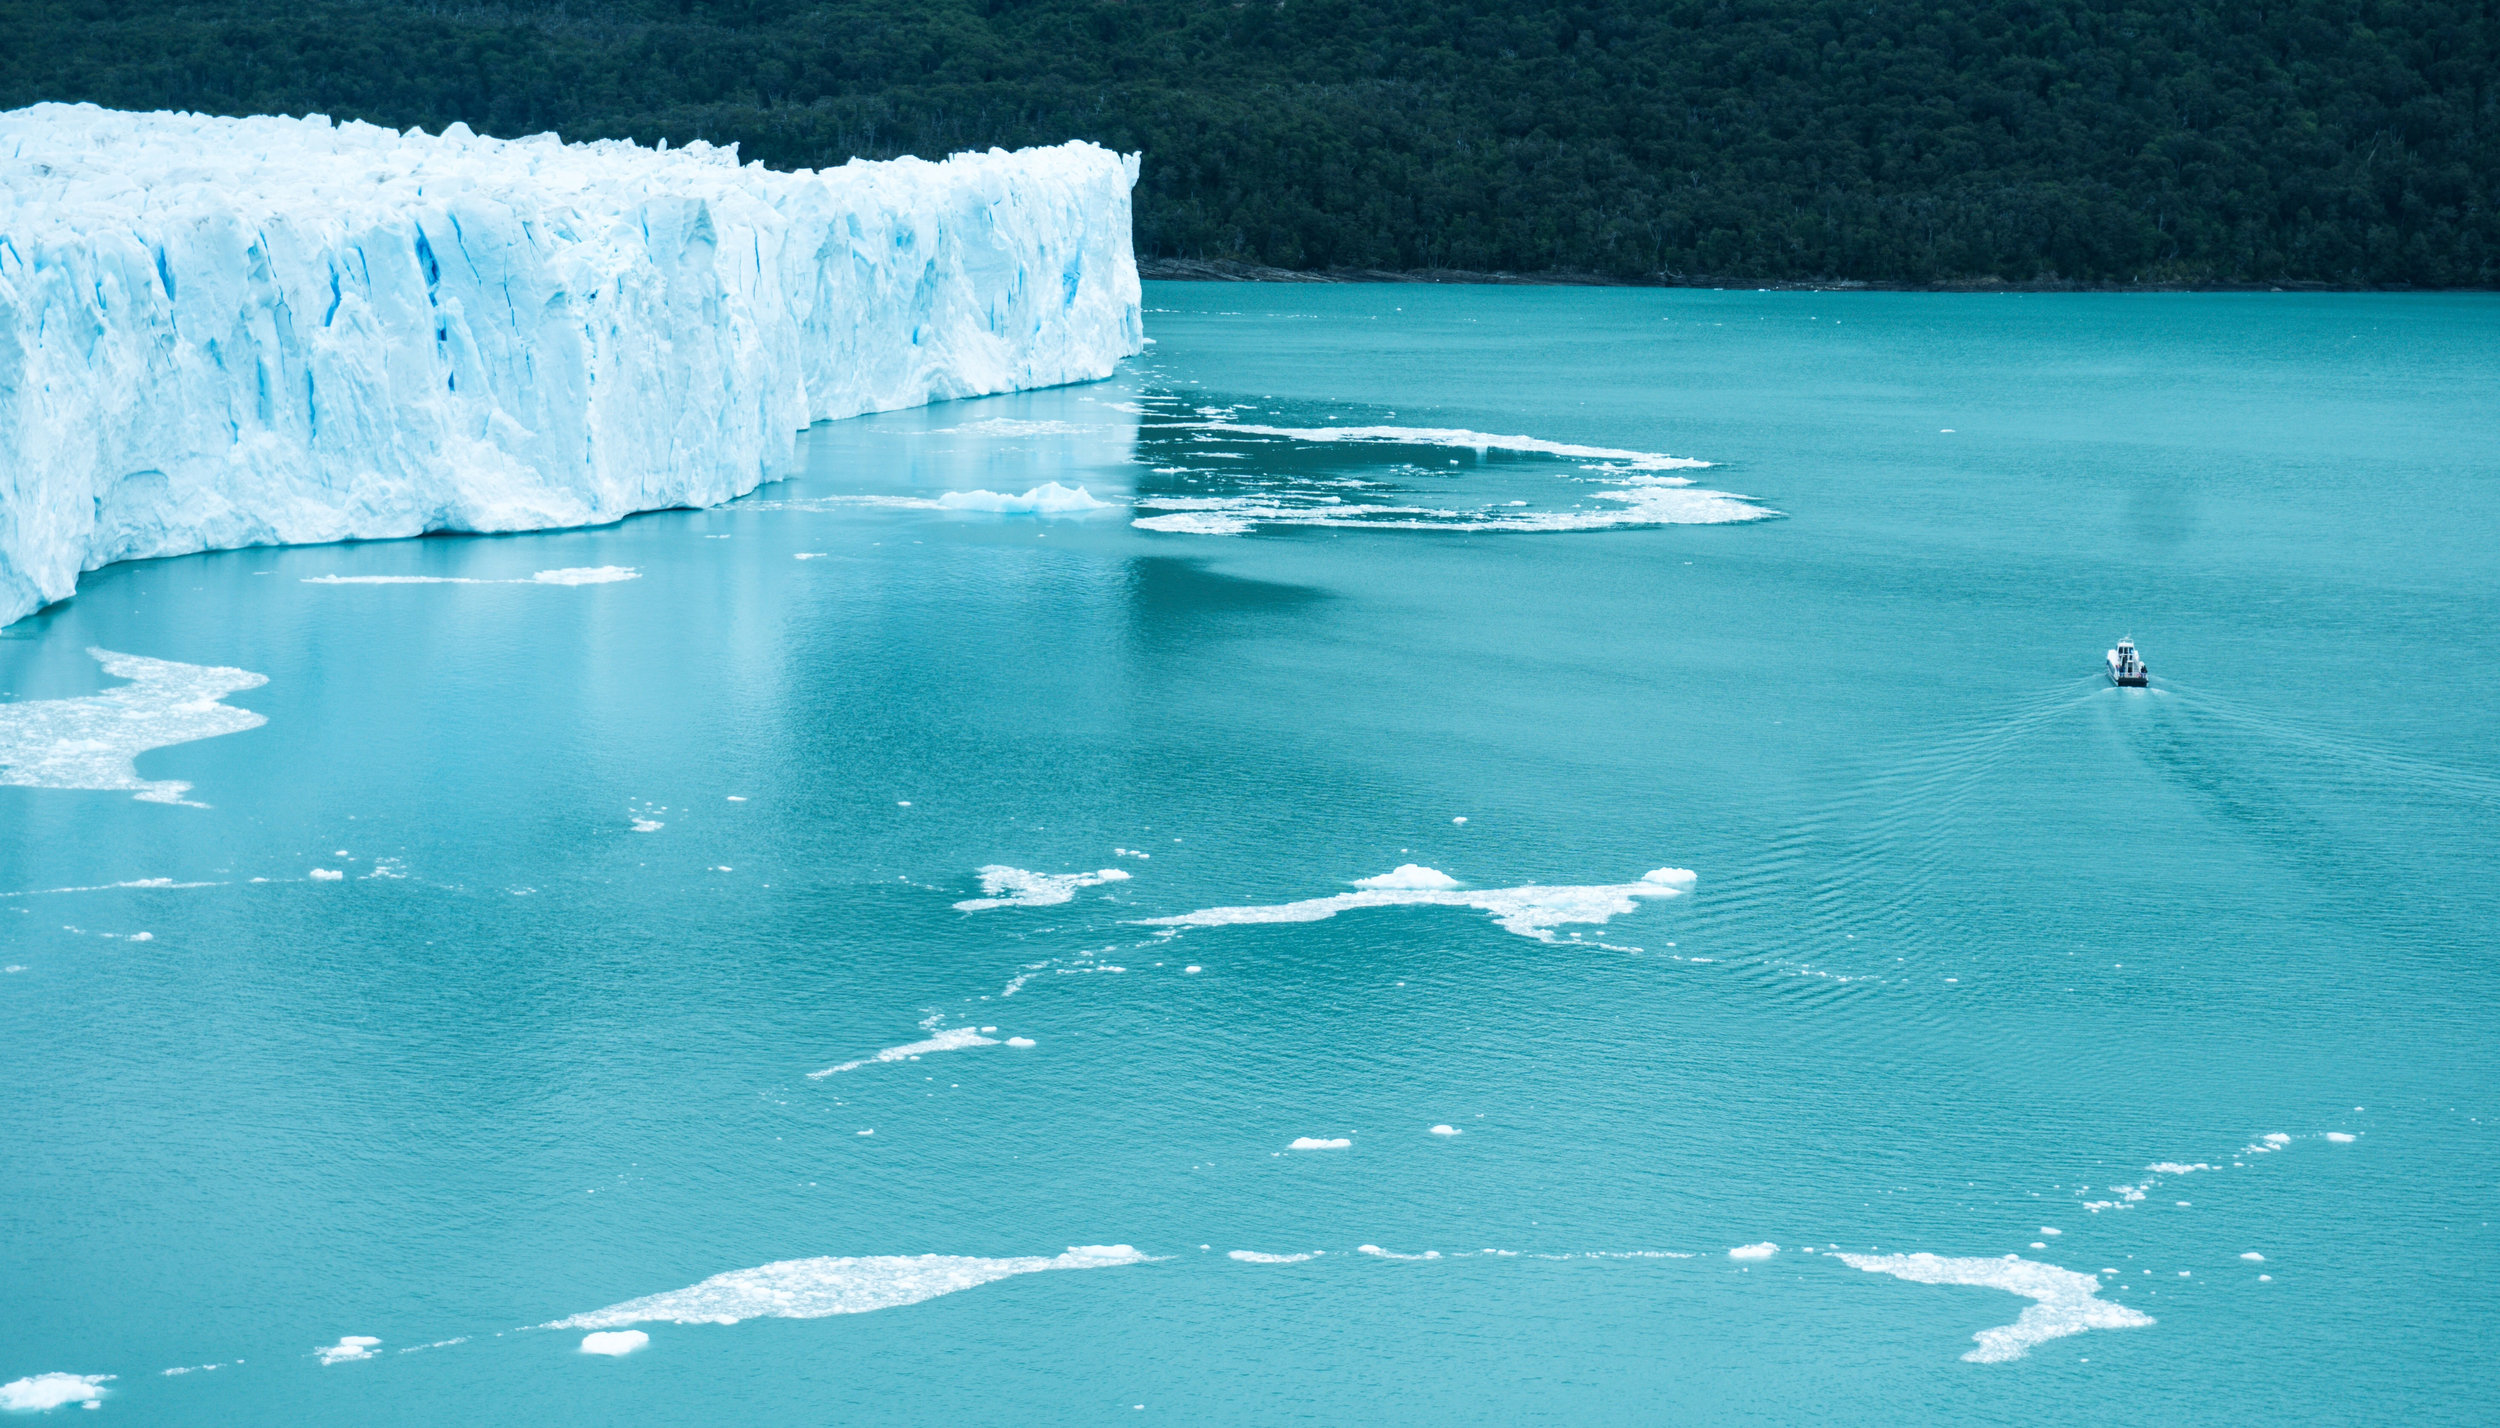 My color inspiration comes from the melting glaciers that I really hope will recover.